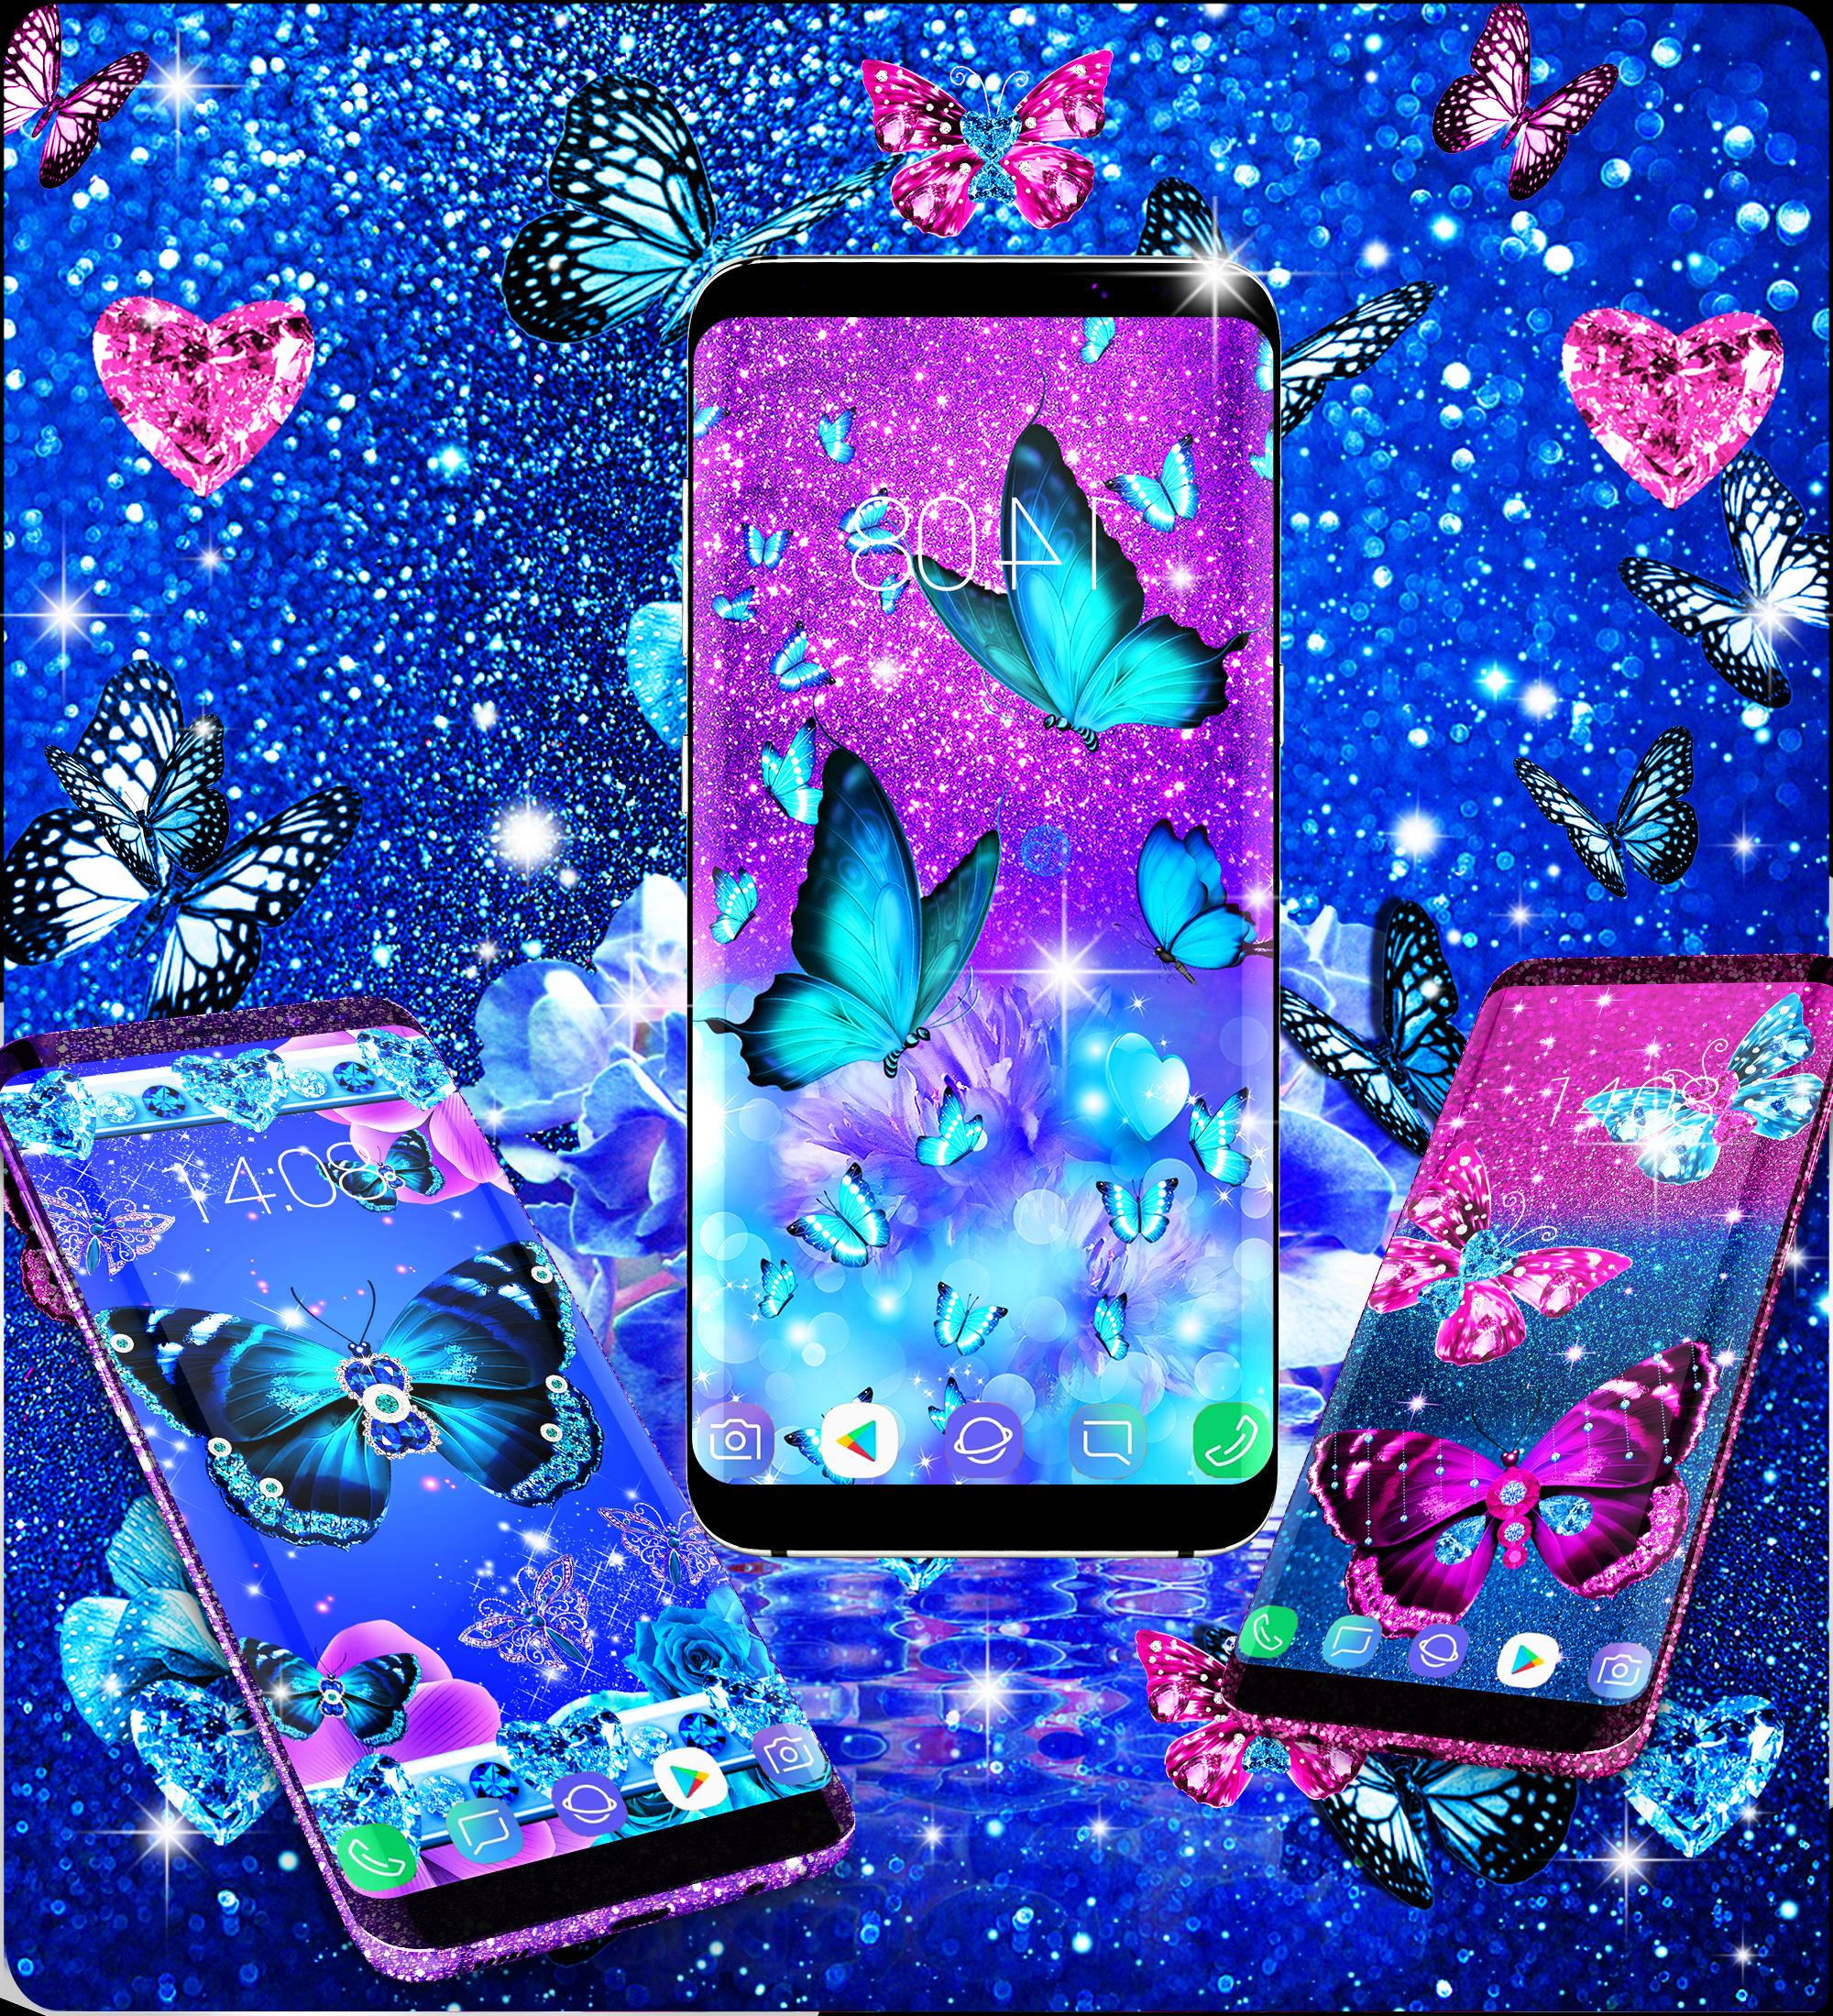 Blue Glitter Butterflies Live Wallpaper For Android APK